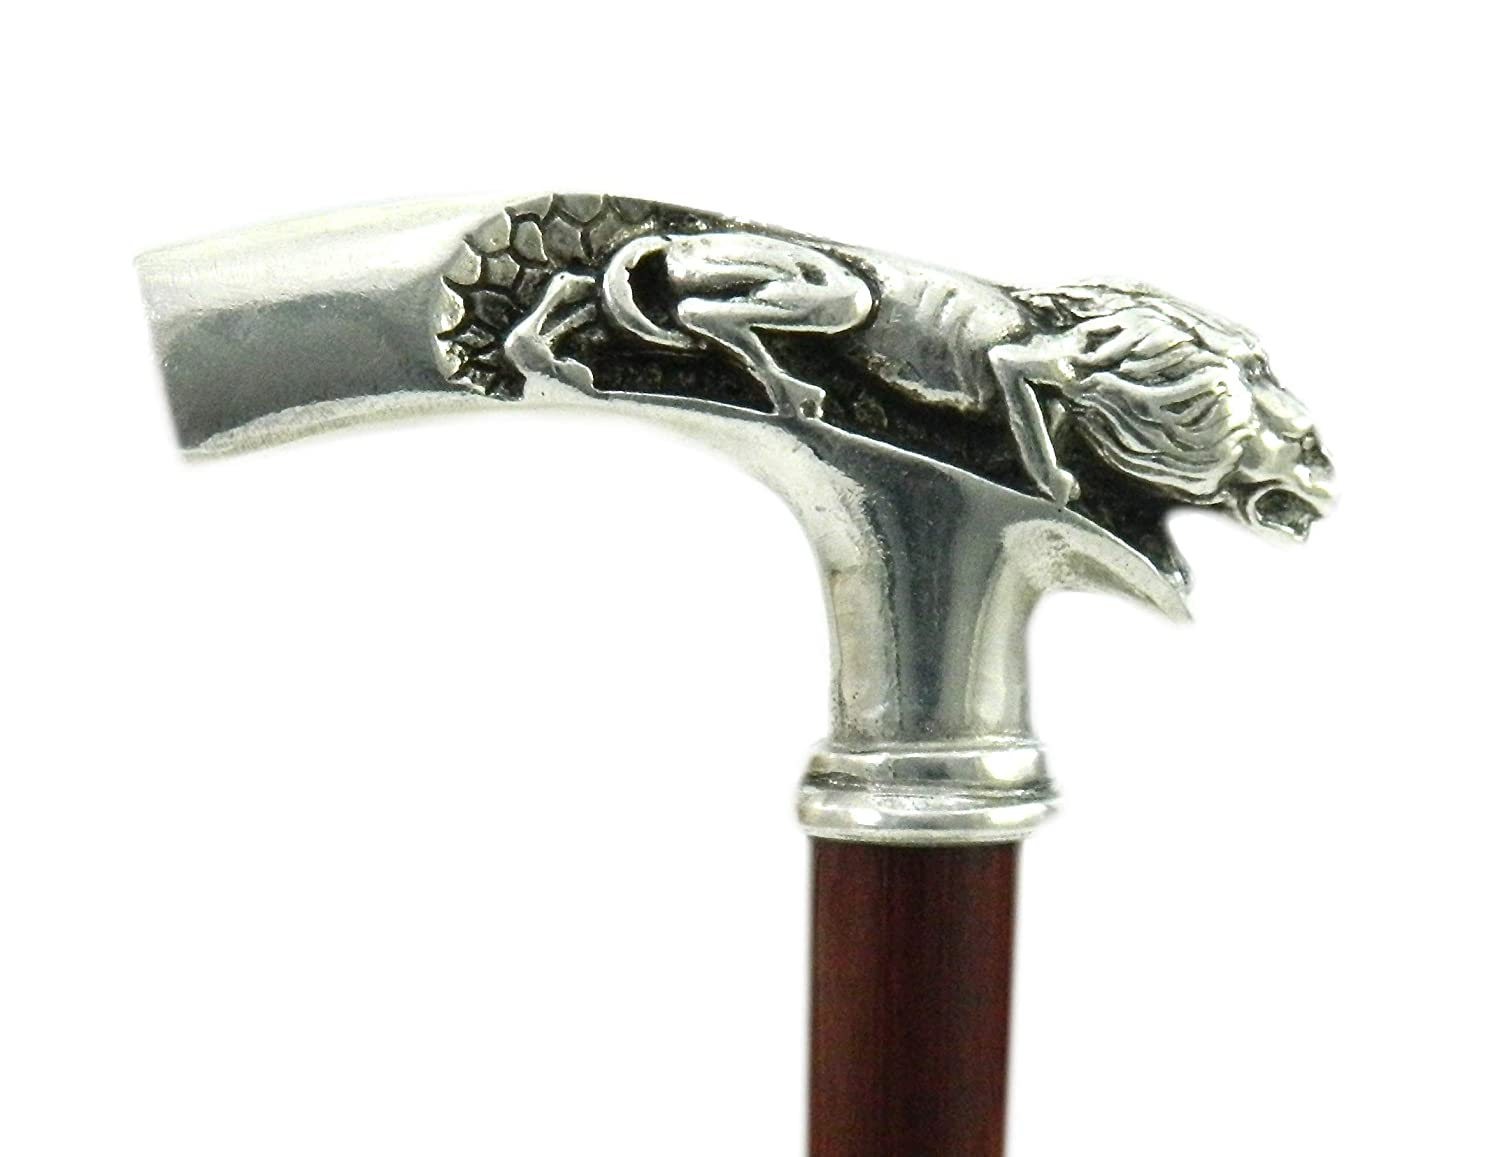 Cavagnini made in Italy classy model Walking canes and stick liberty style Lion 38 for the elderly tailor-made for you